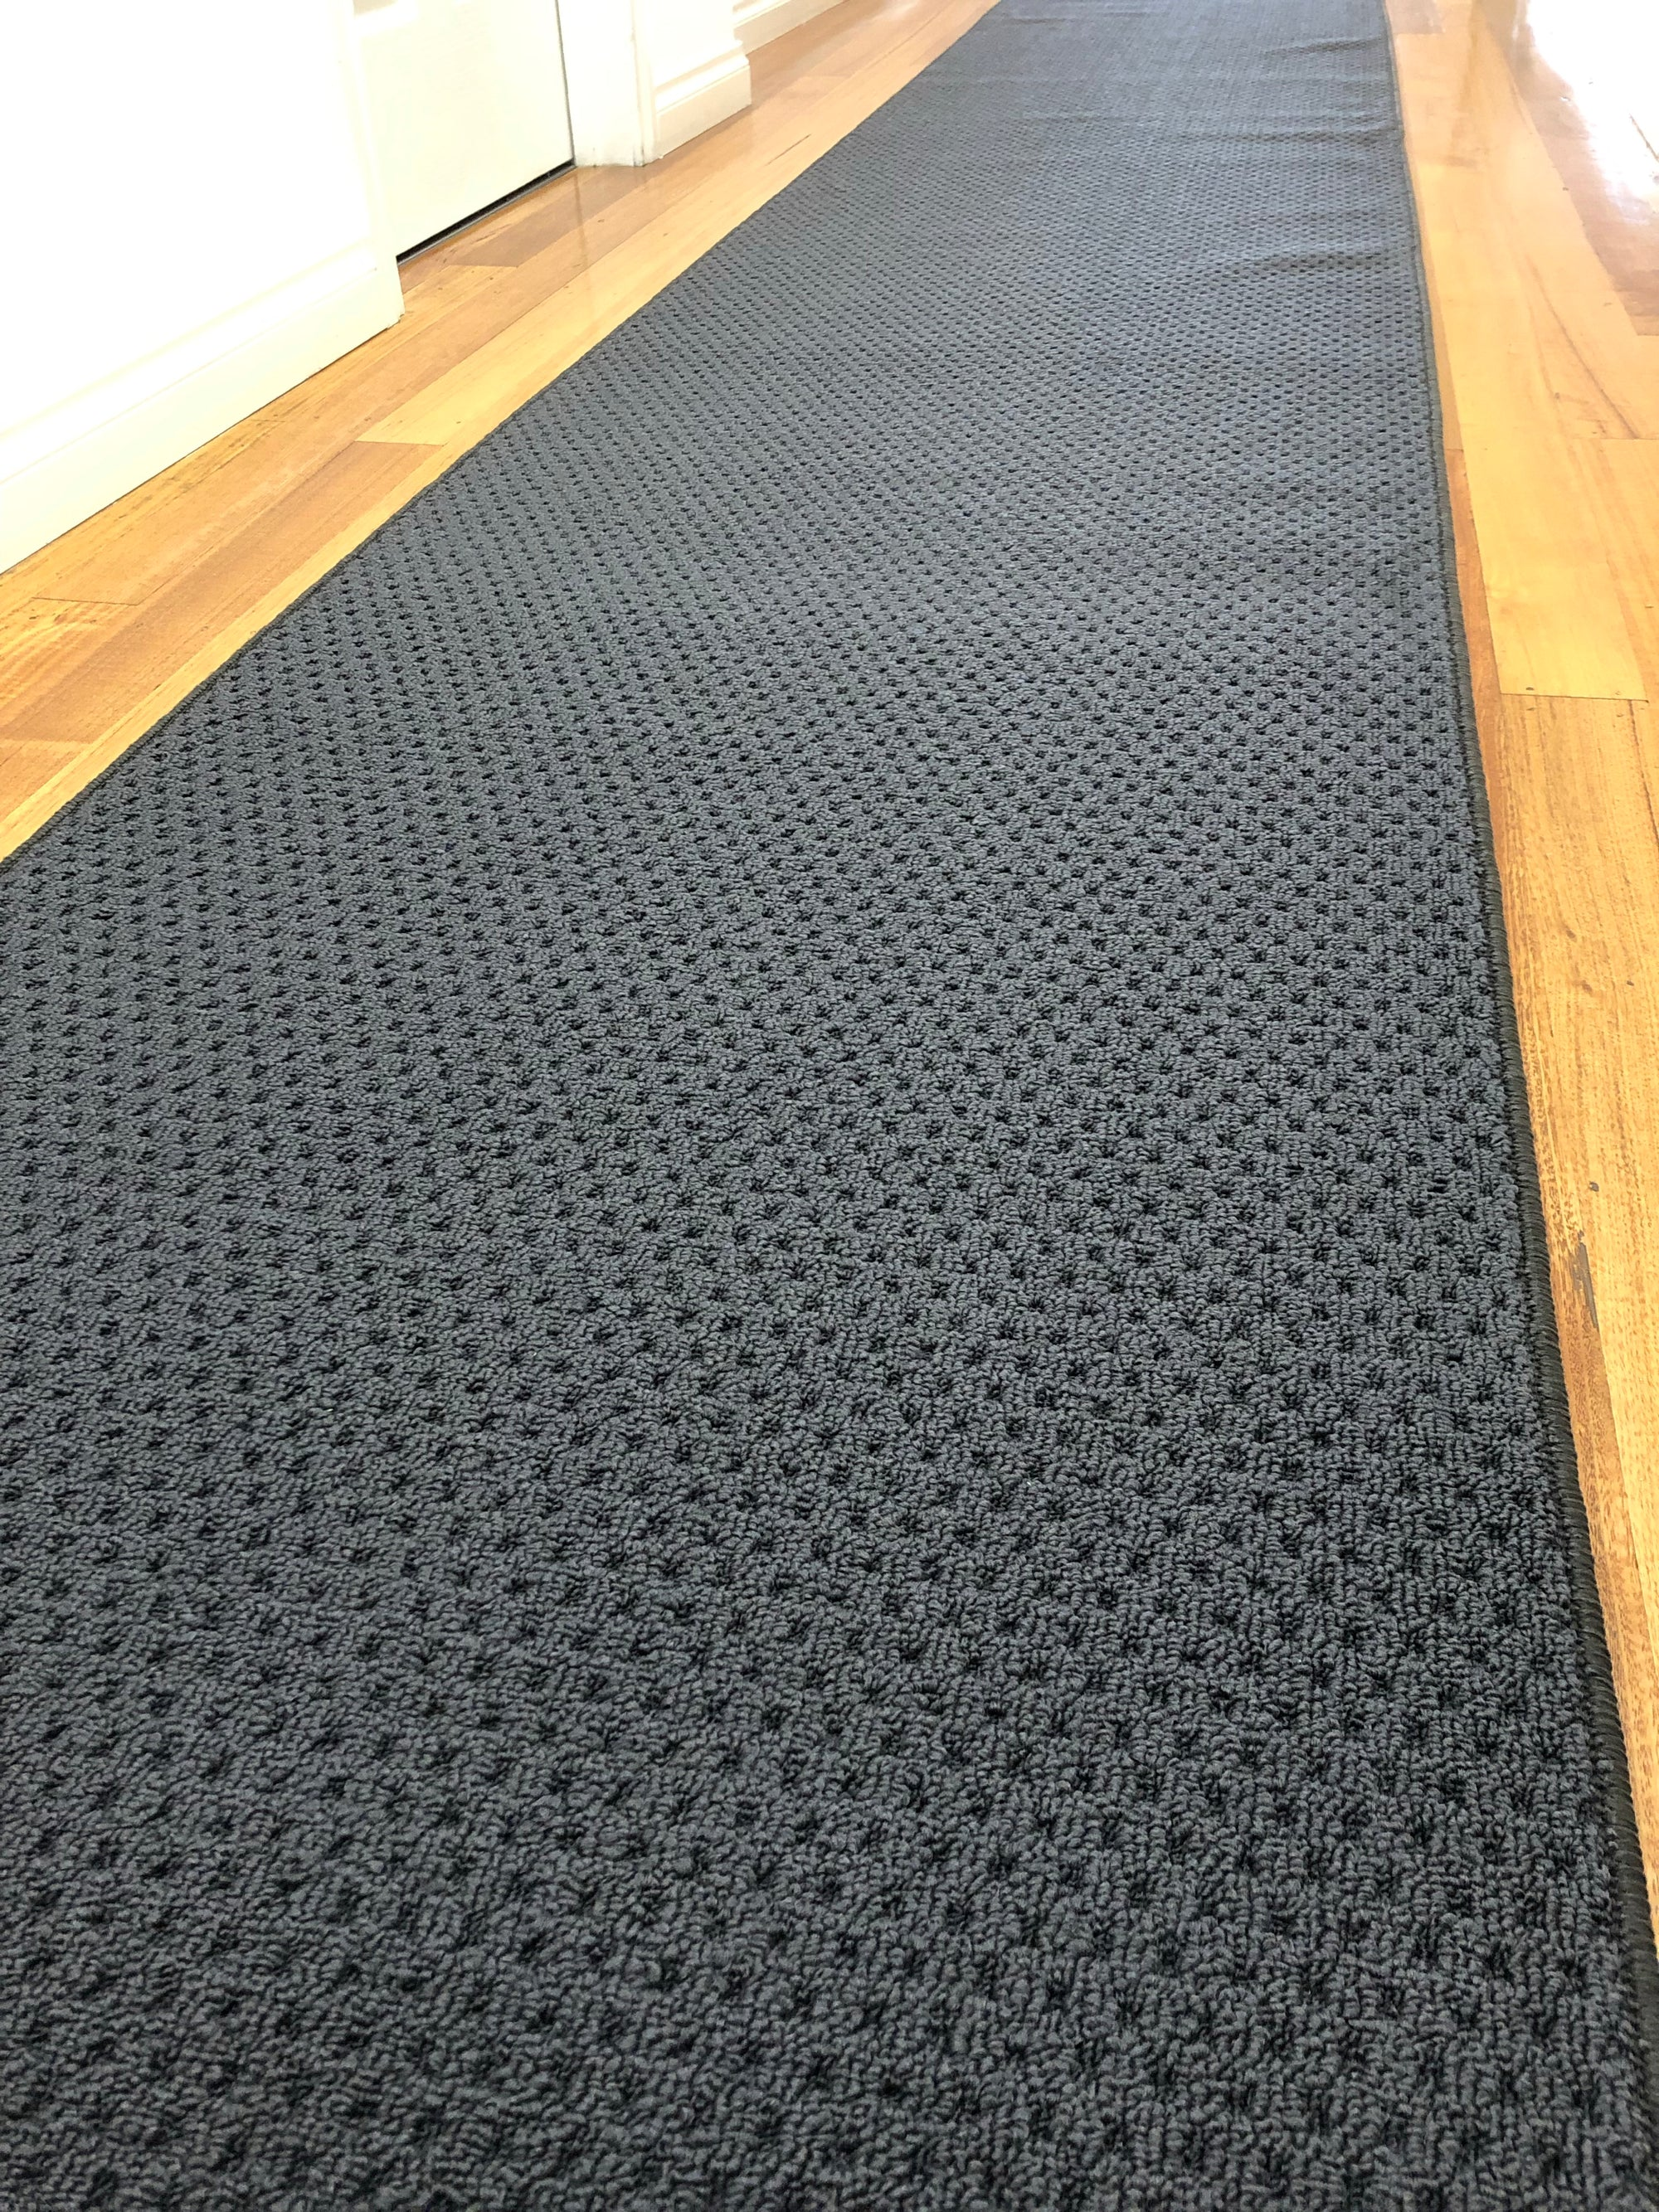 Pablo Charcoal Carpet Hall Runner Rug